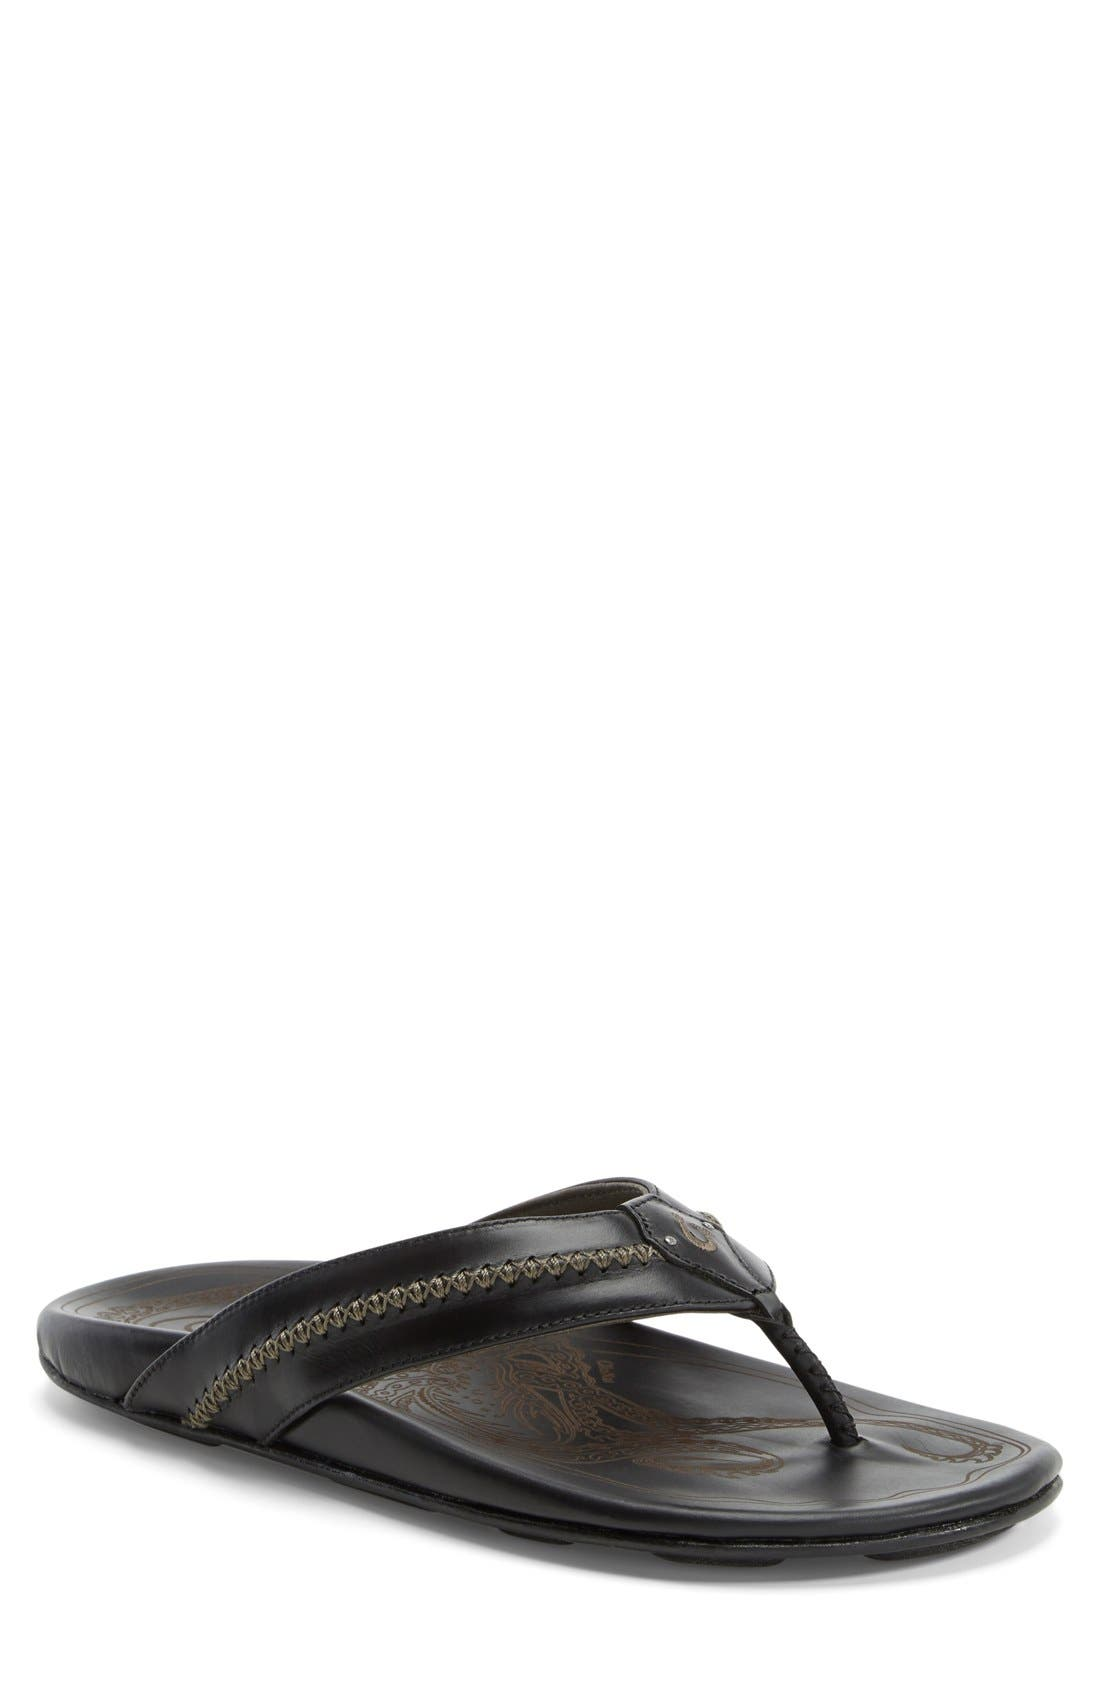 OluKai 'Mea Ola' Flip Flop (Men) (Regular Retail Price: $120.00)